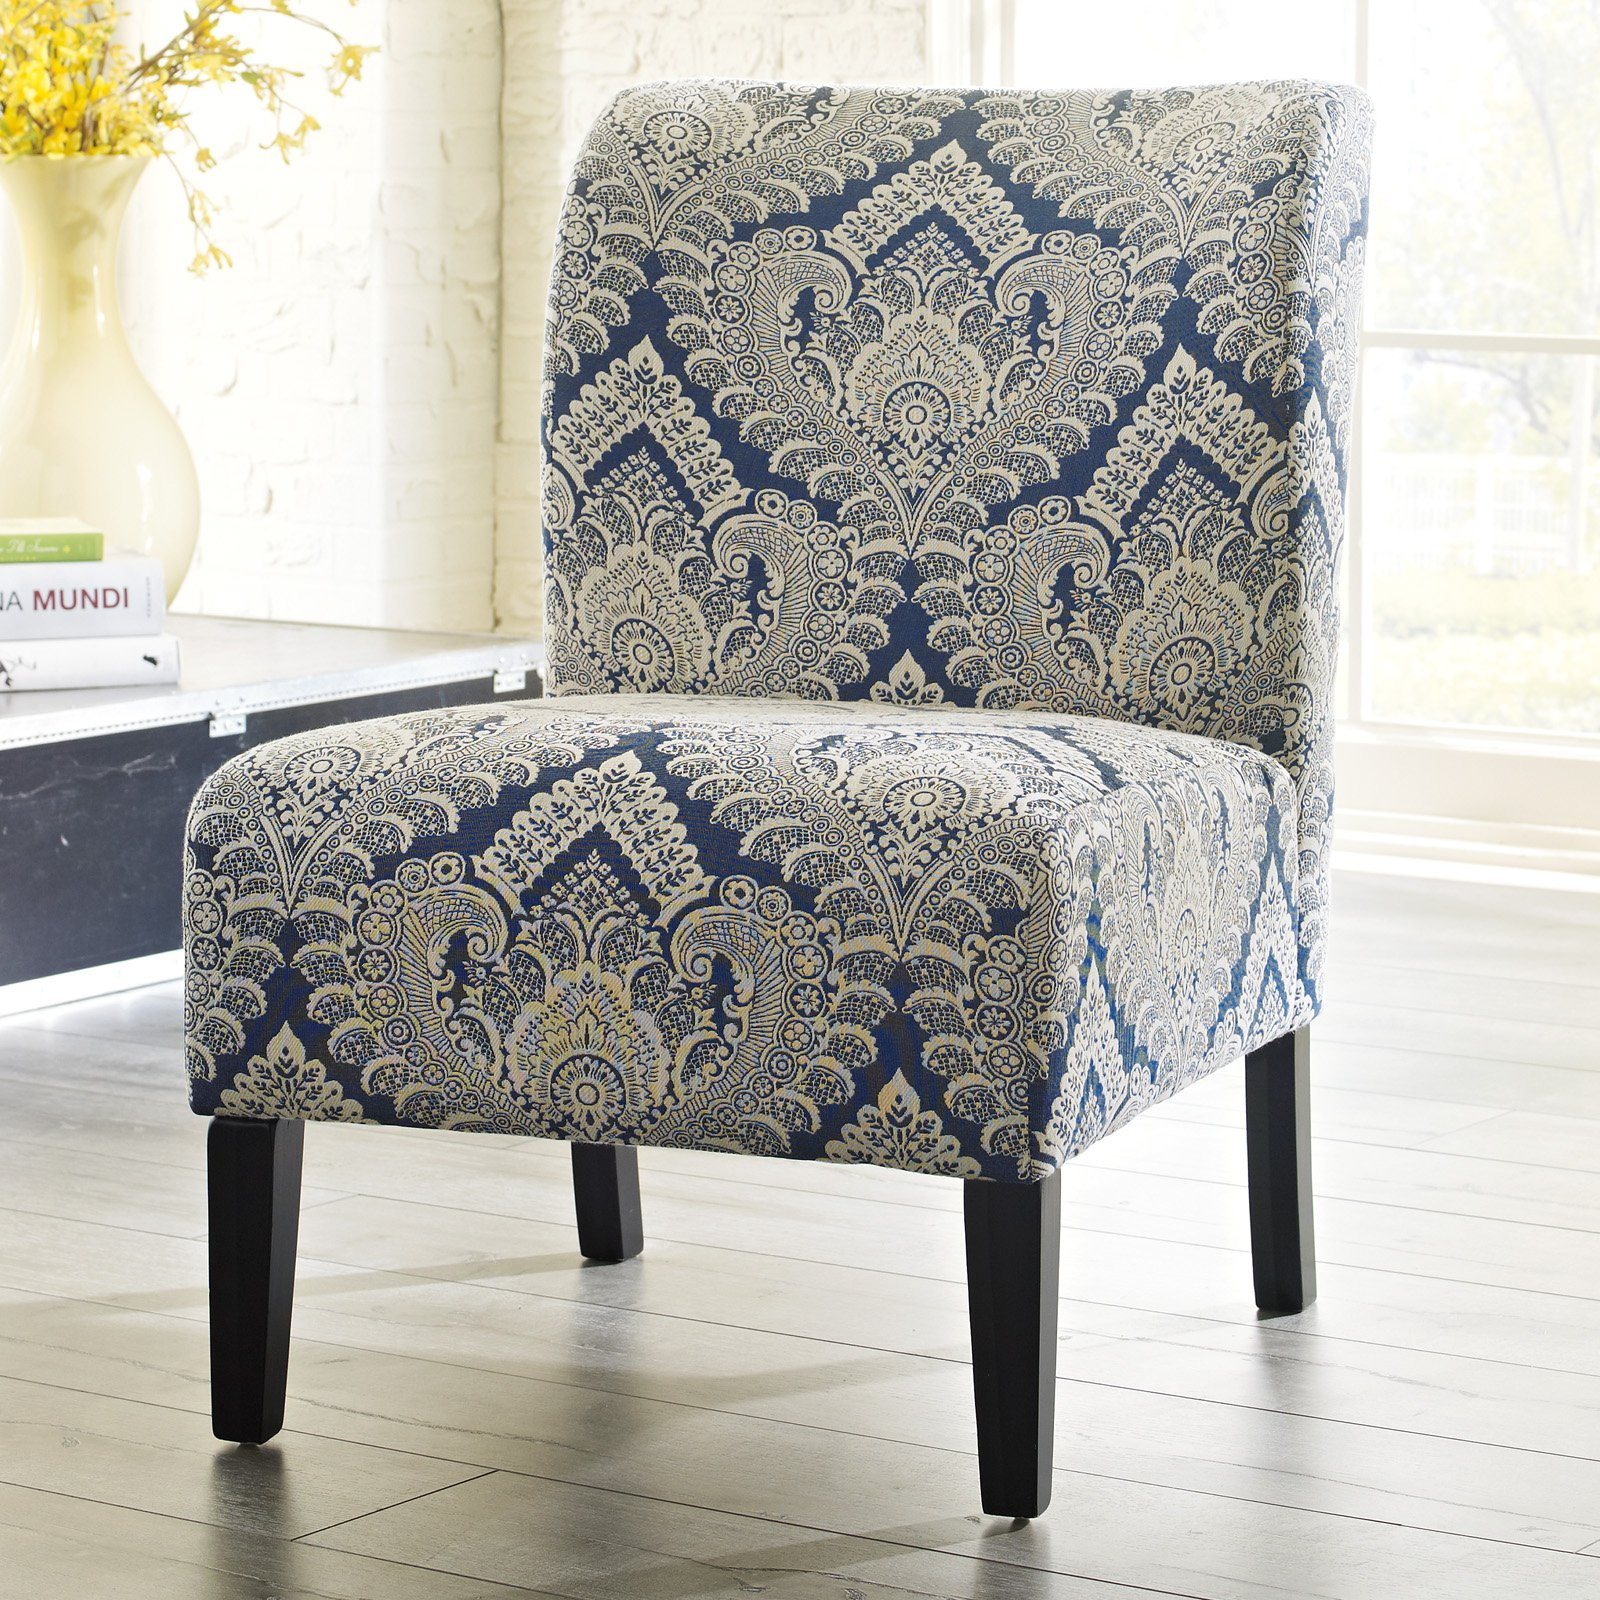 Signature Design by Ashley Honnally Accent Chair - Sapphire